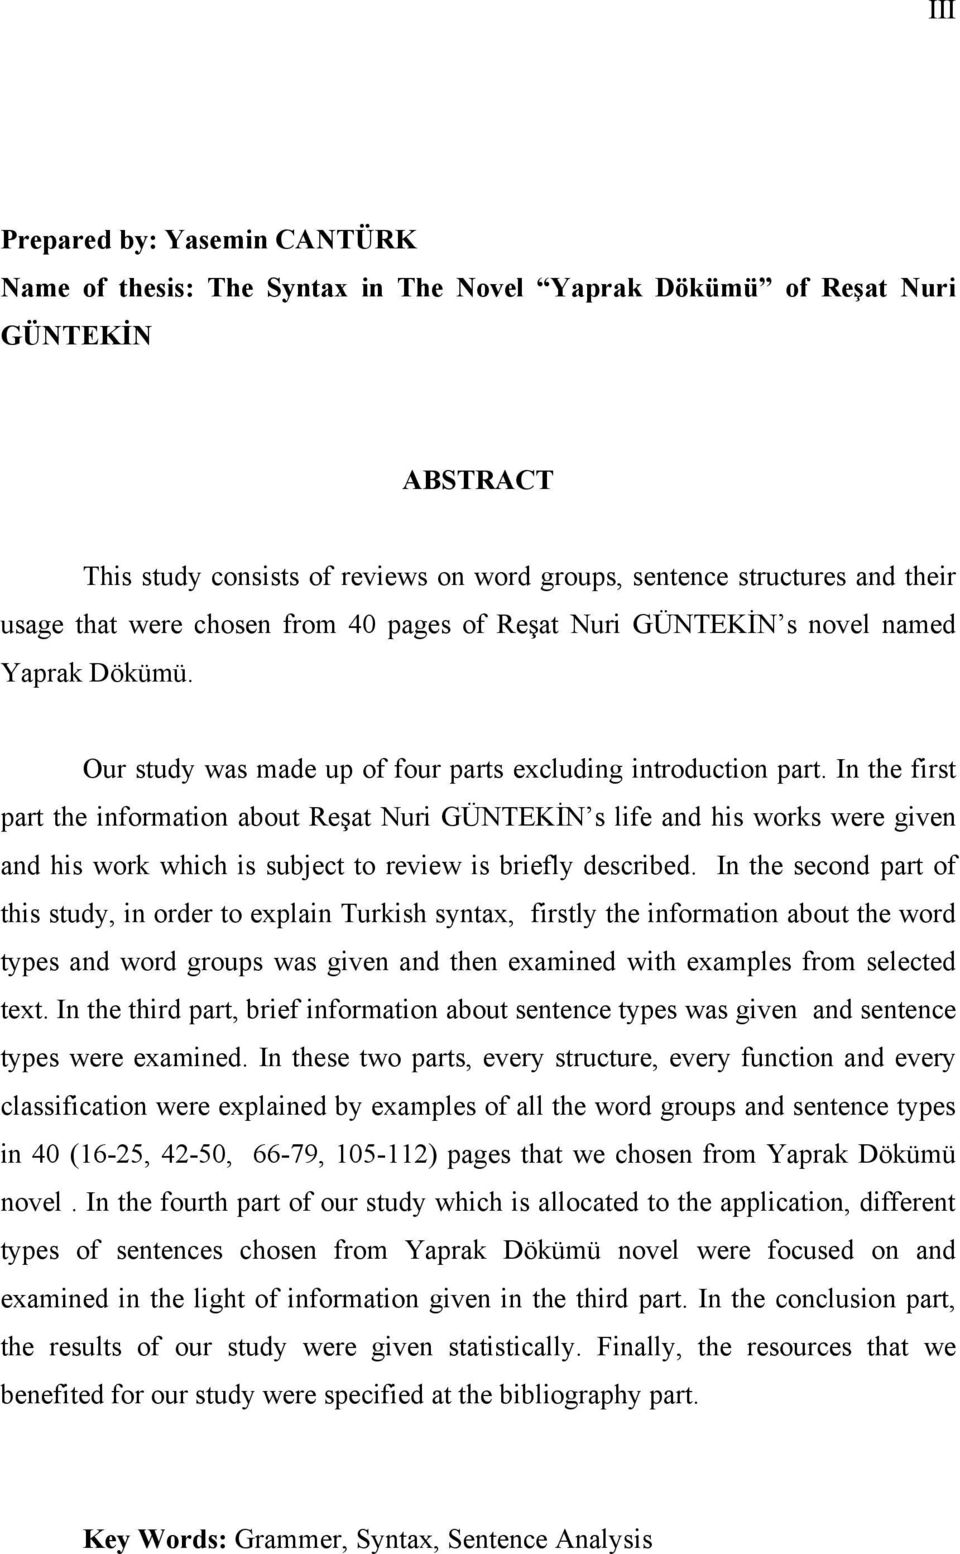 In the first part the information about Reşat Nuri GÜNTEKİN s life and his works were given and his work which is subject to review is briefly described.